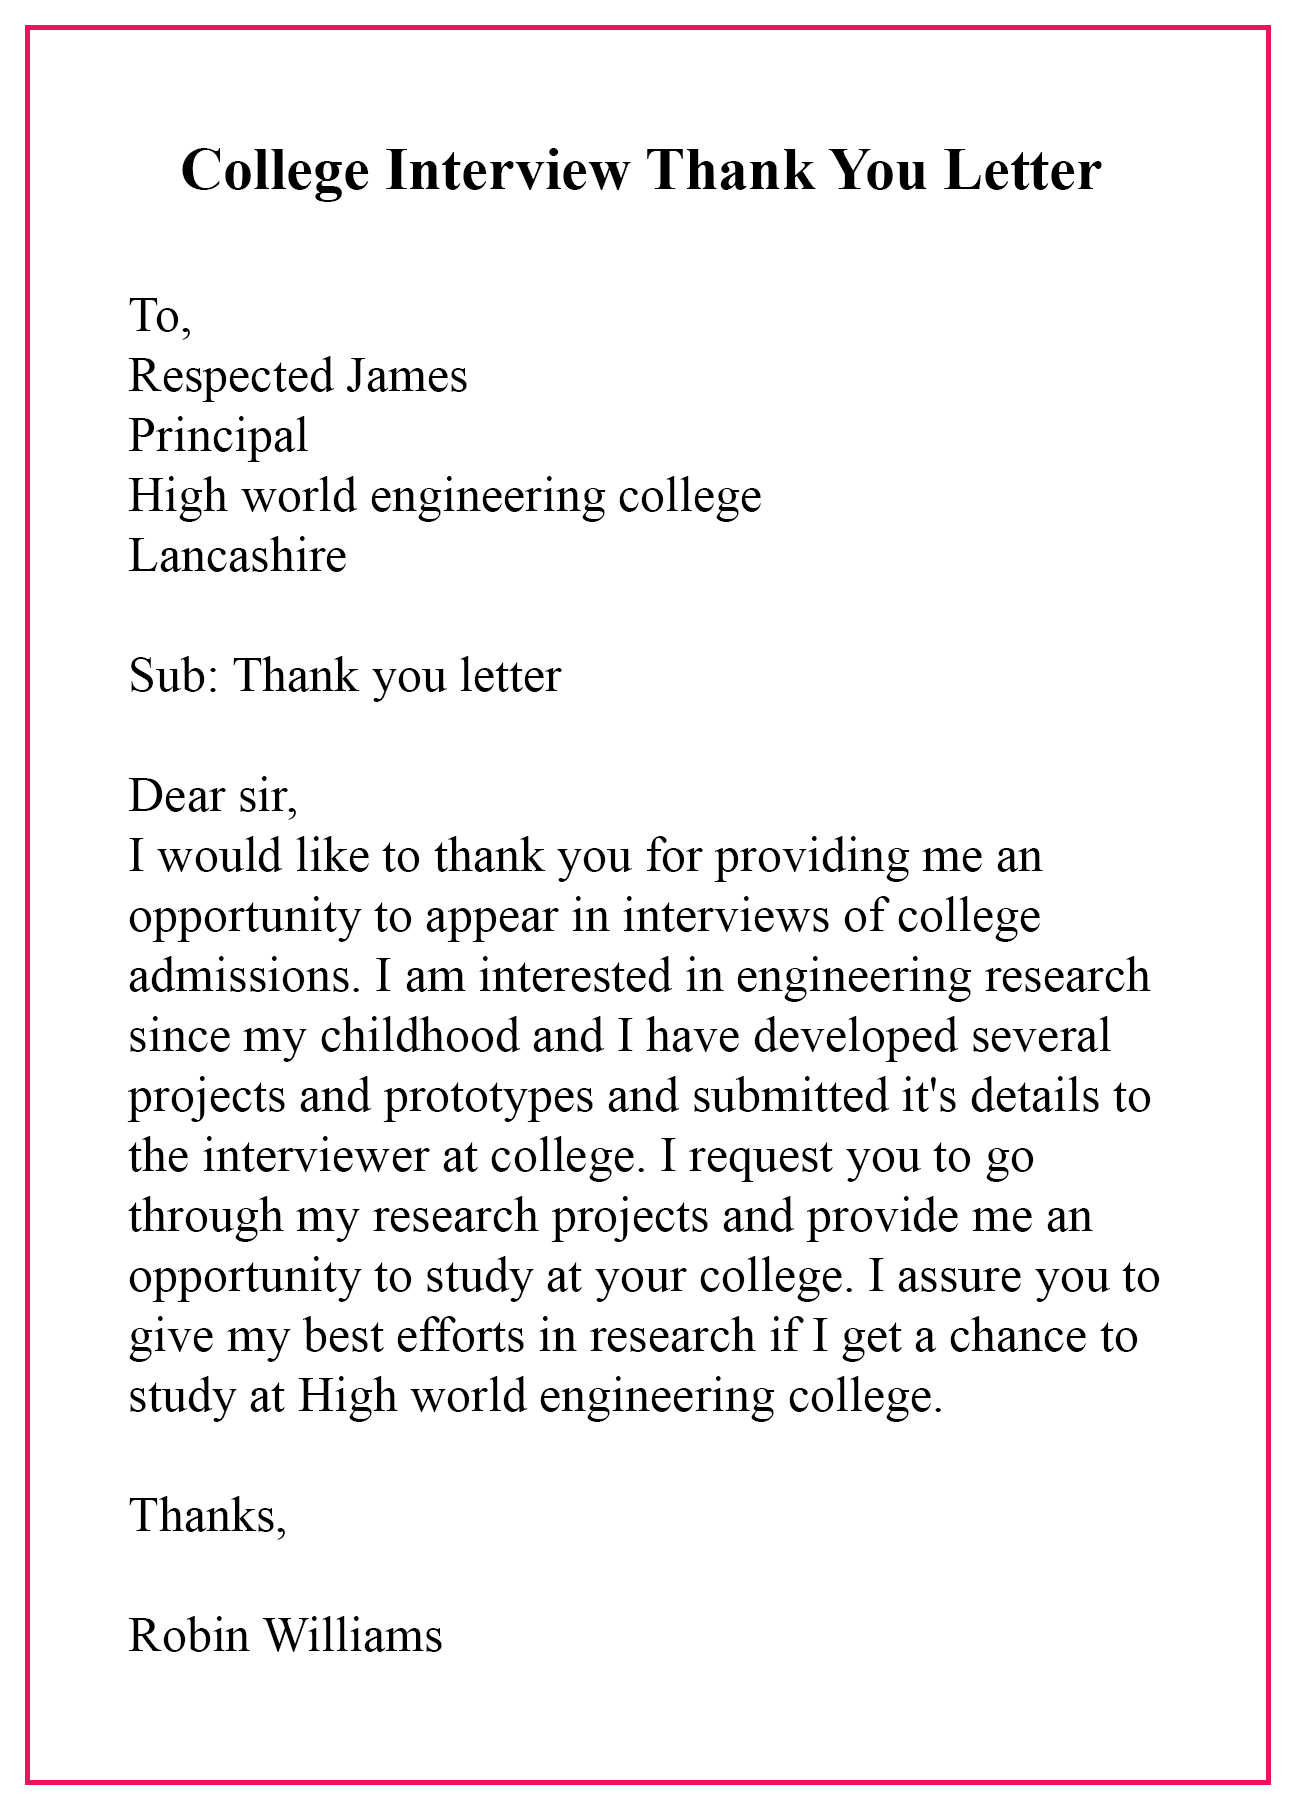 College Interview Thank You Letter